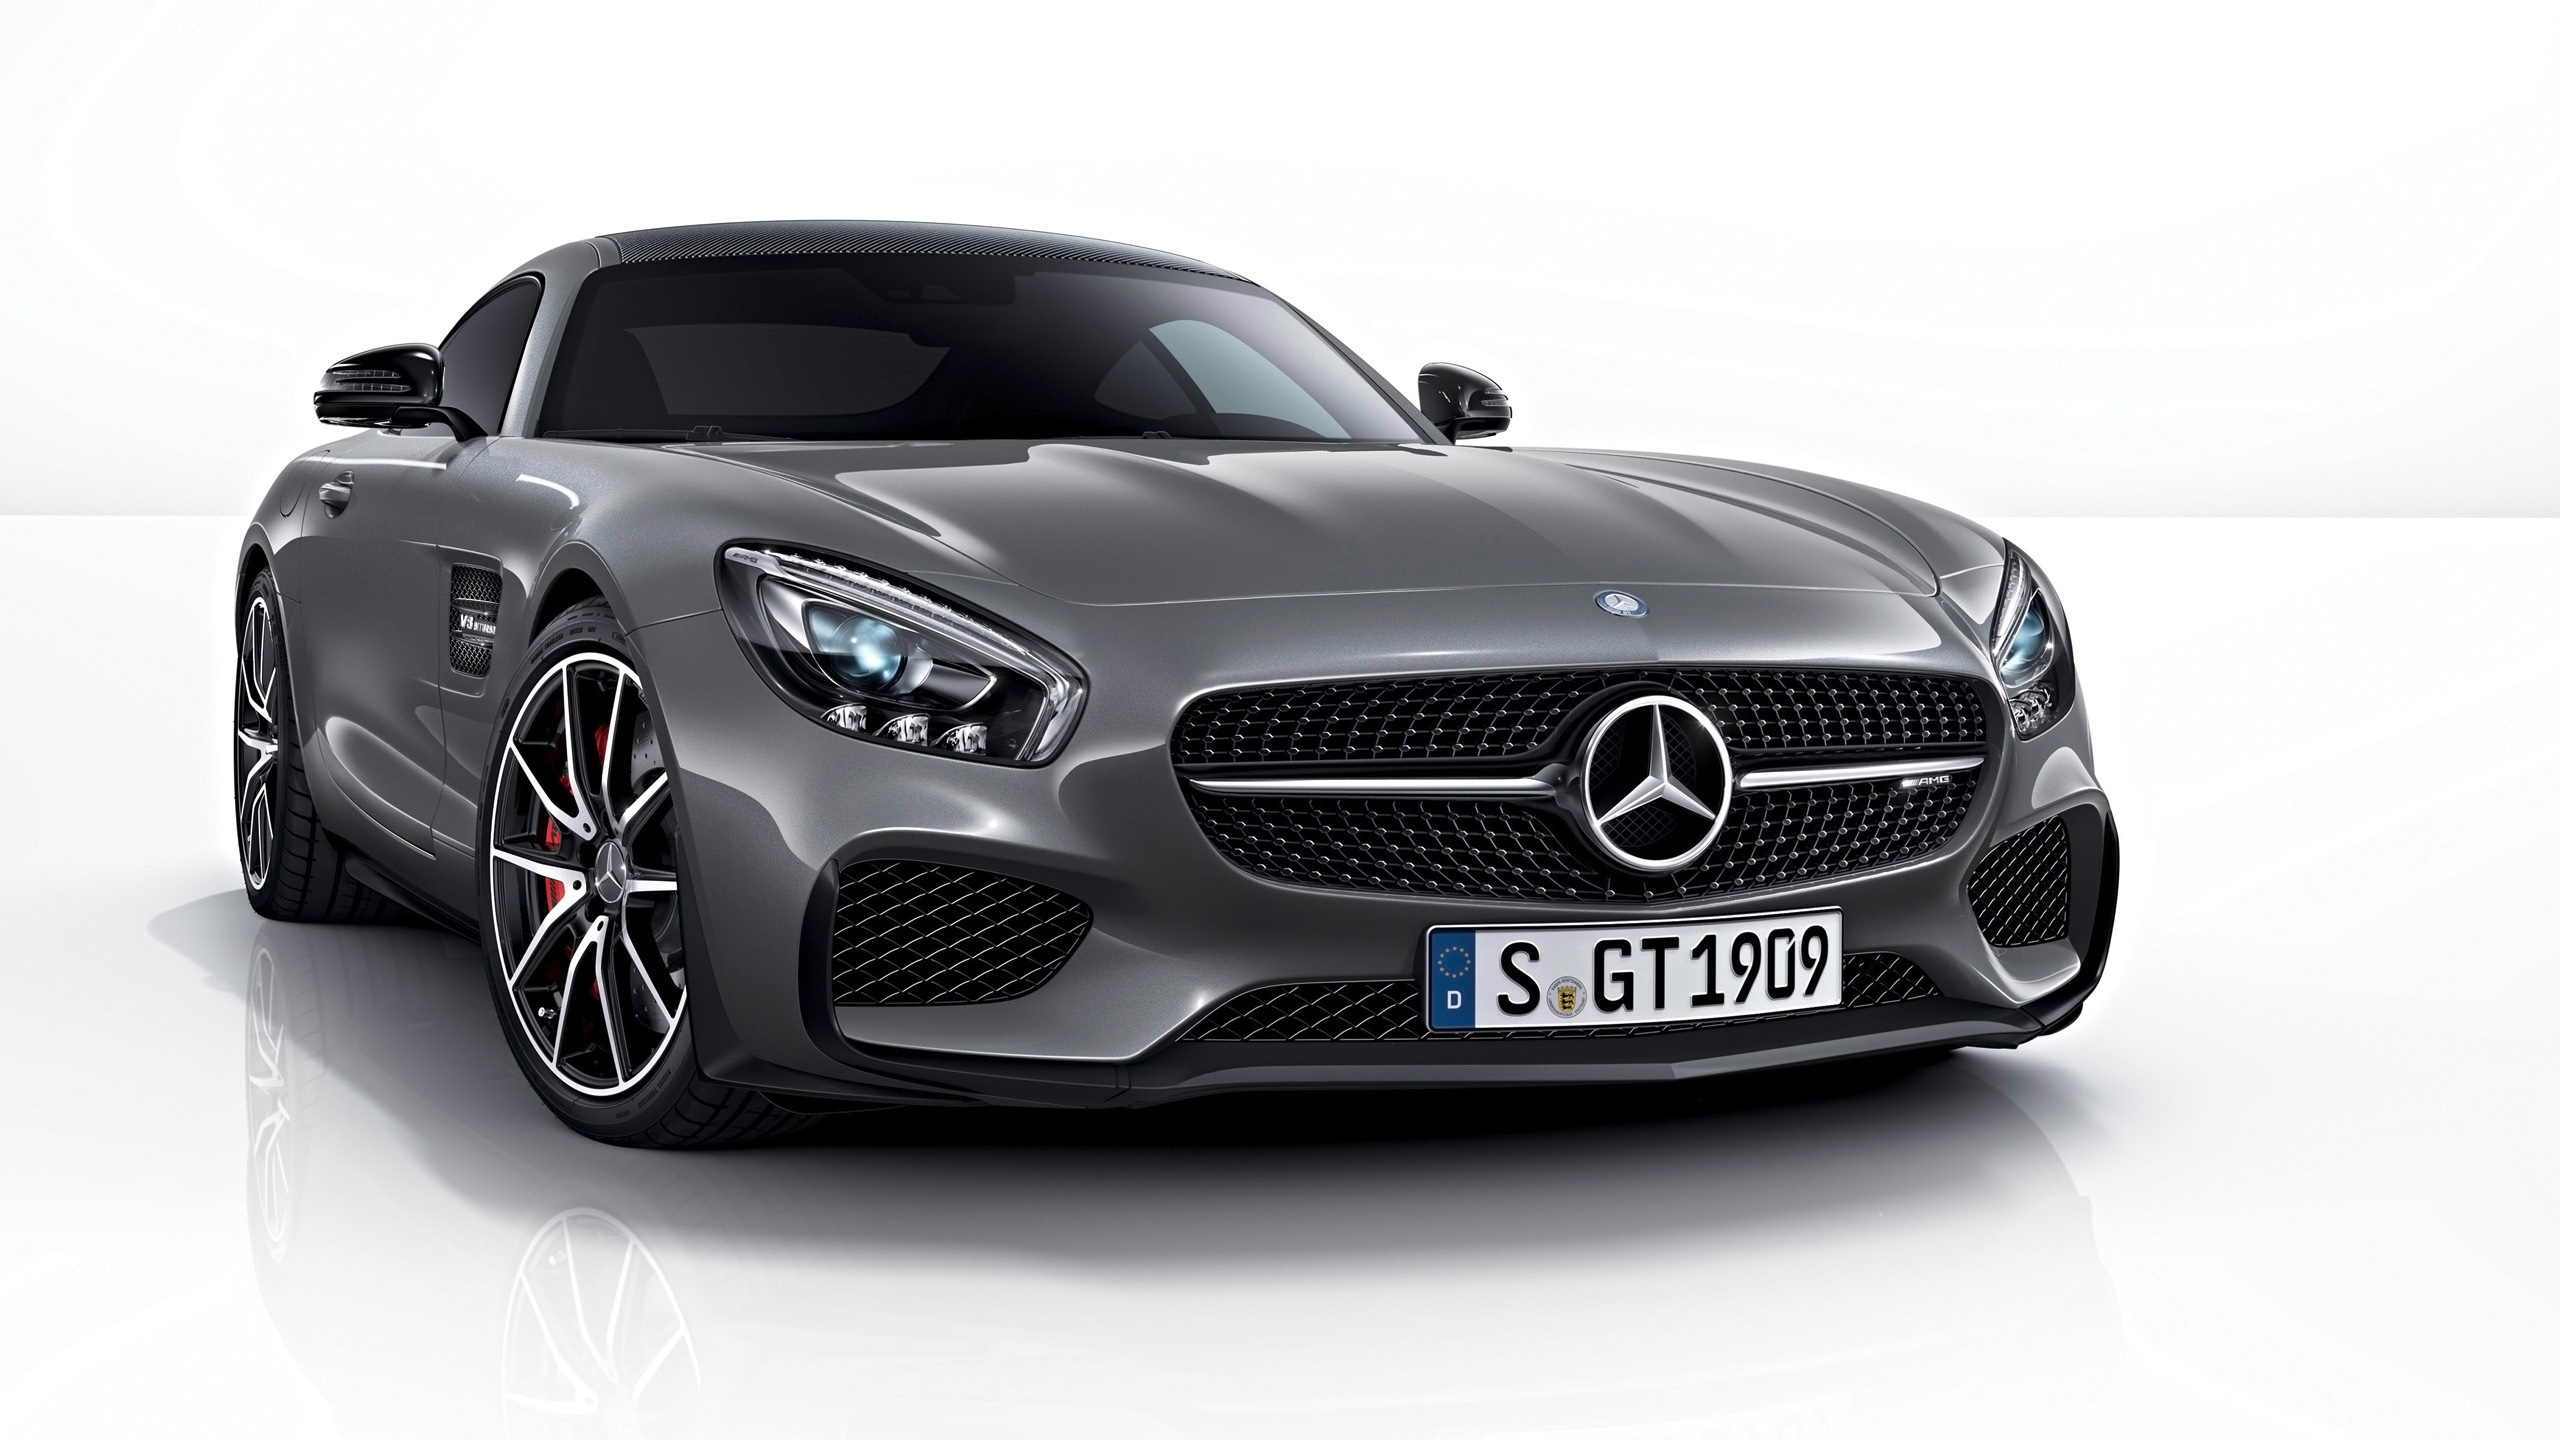 2015 mercedes amg gt s edition wallpaper hd car. Black Bedroom Furniture Sets. Home Design Ideas